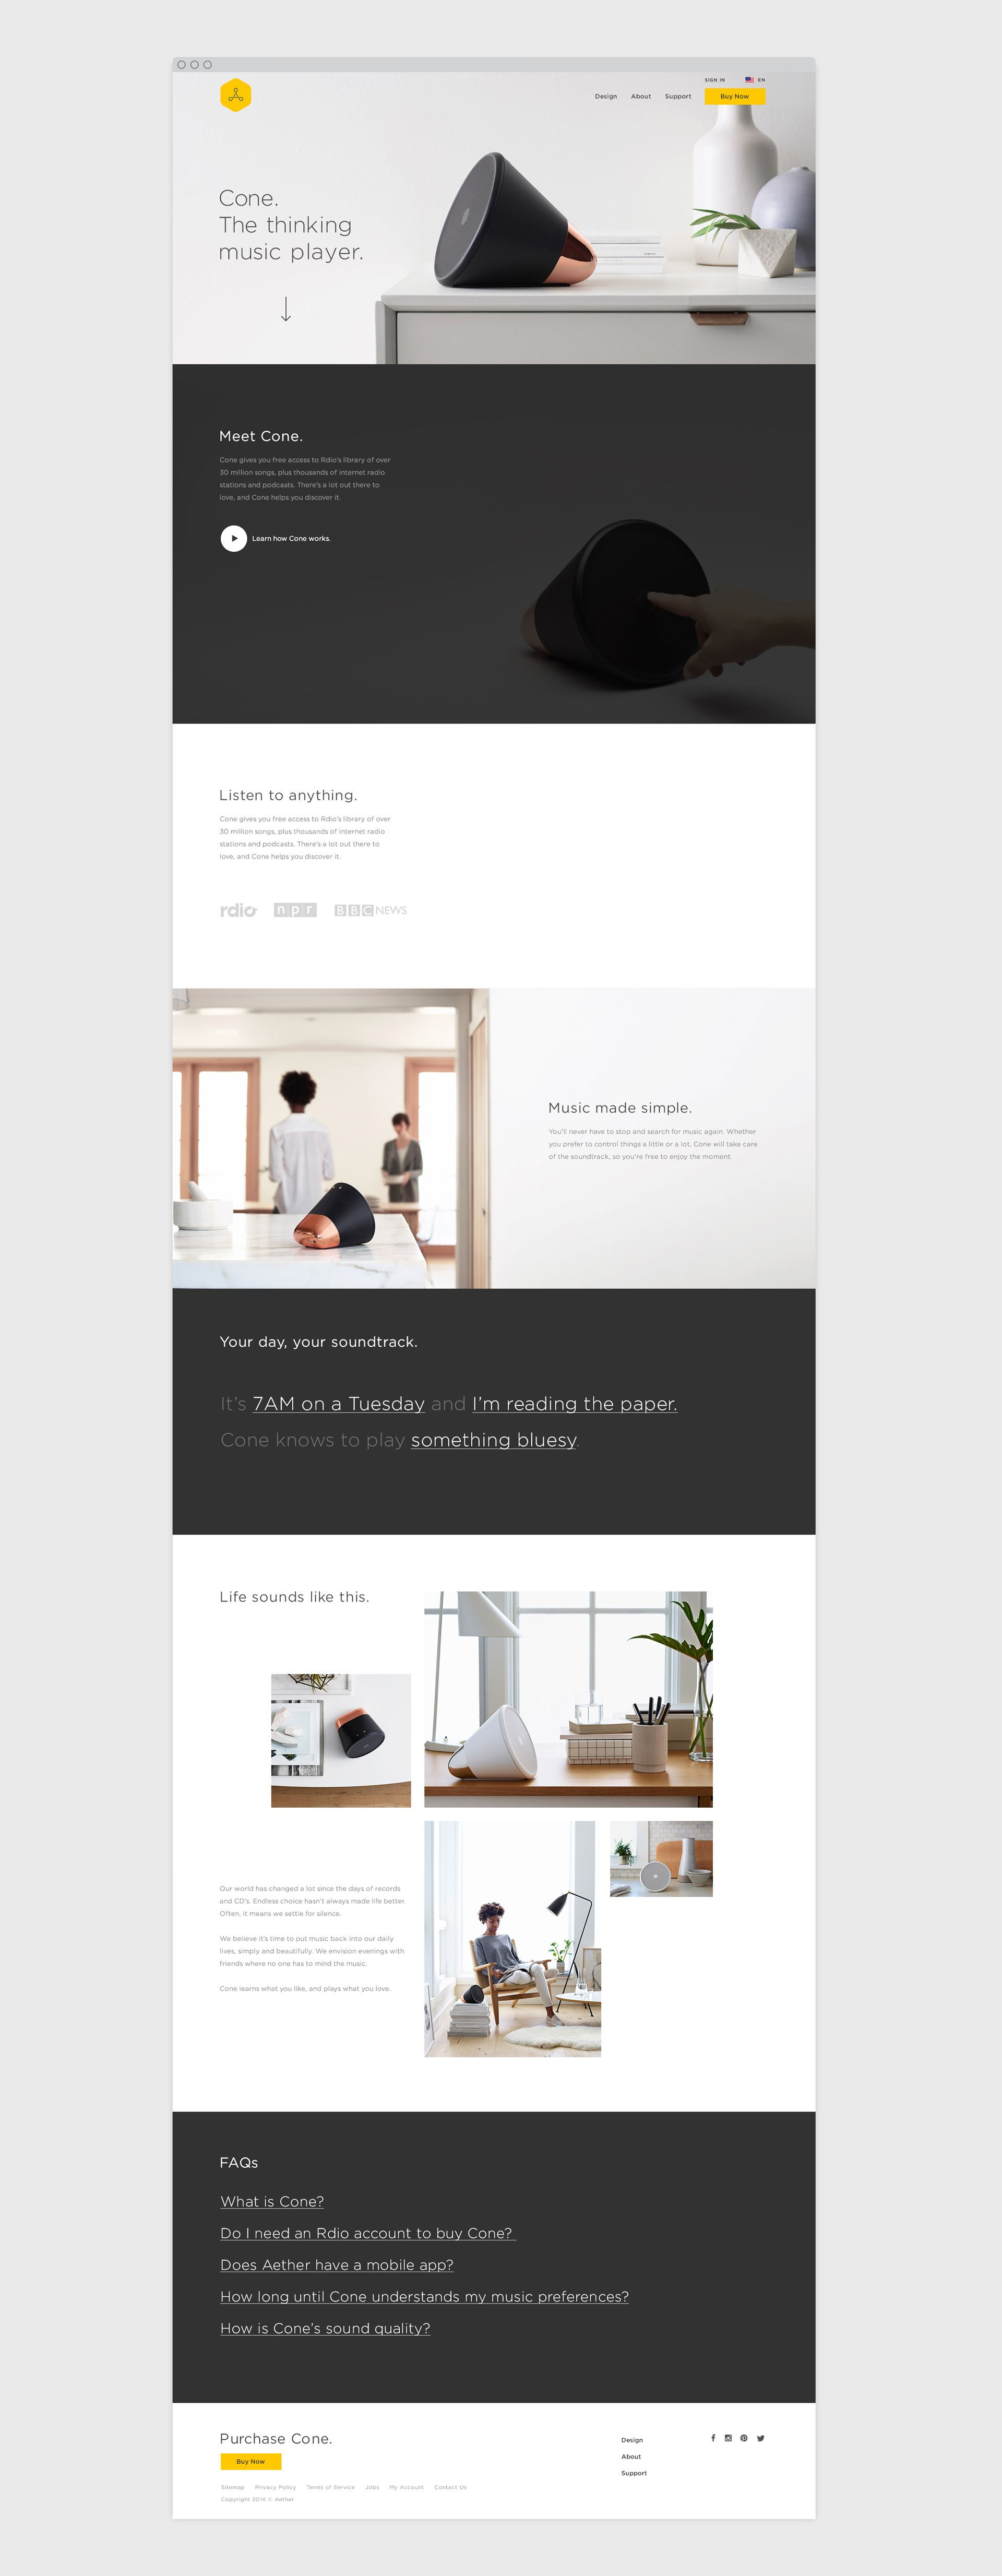 Cone By Character San Francisco A Branding And Design Agency With A Passion For Launching Rejuvenating And Propelling Brands Web Simple Web Design We